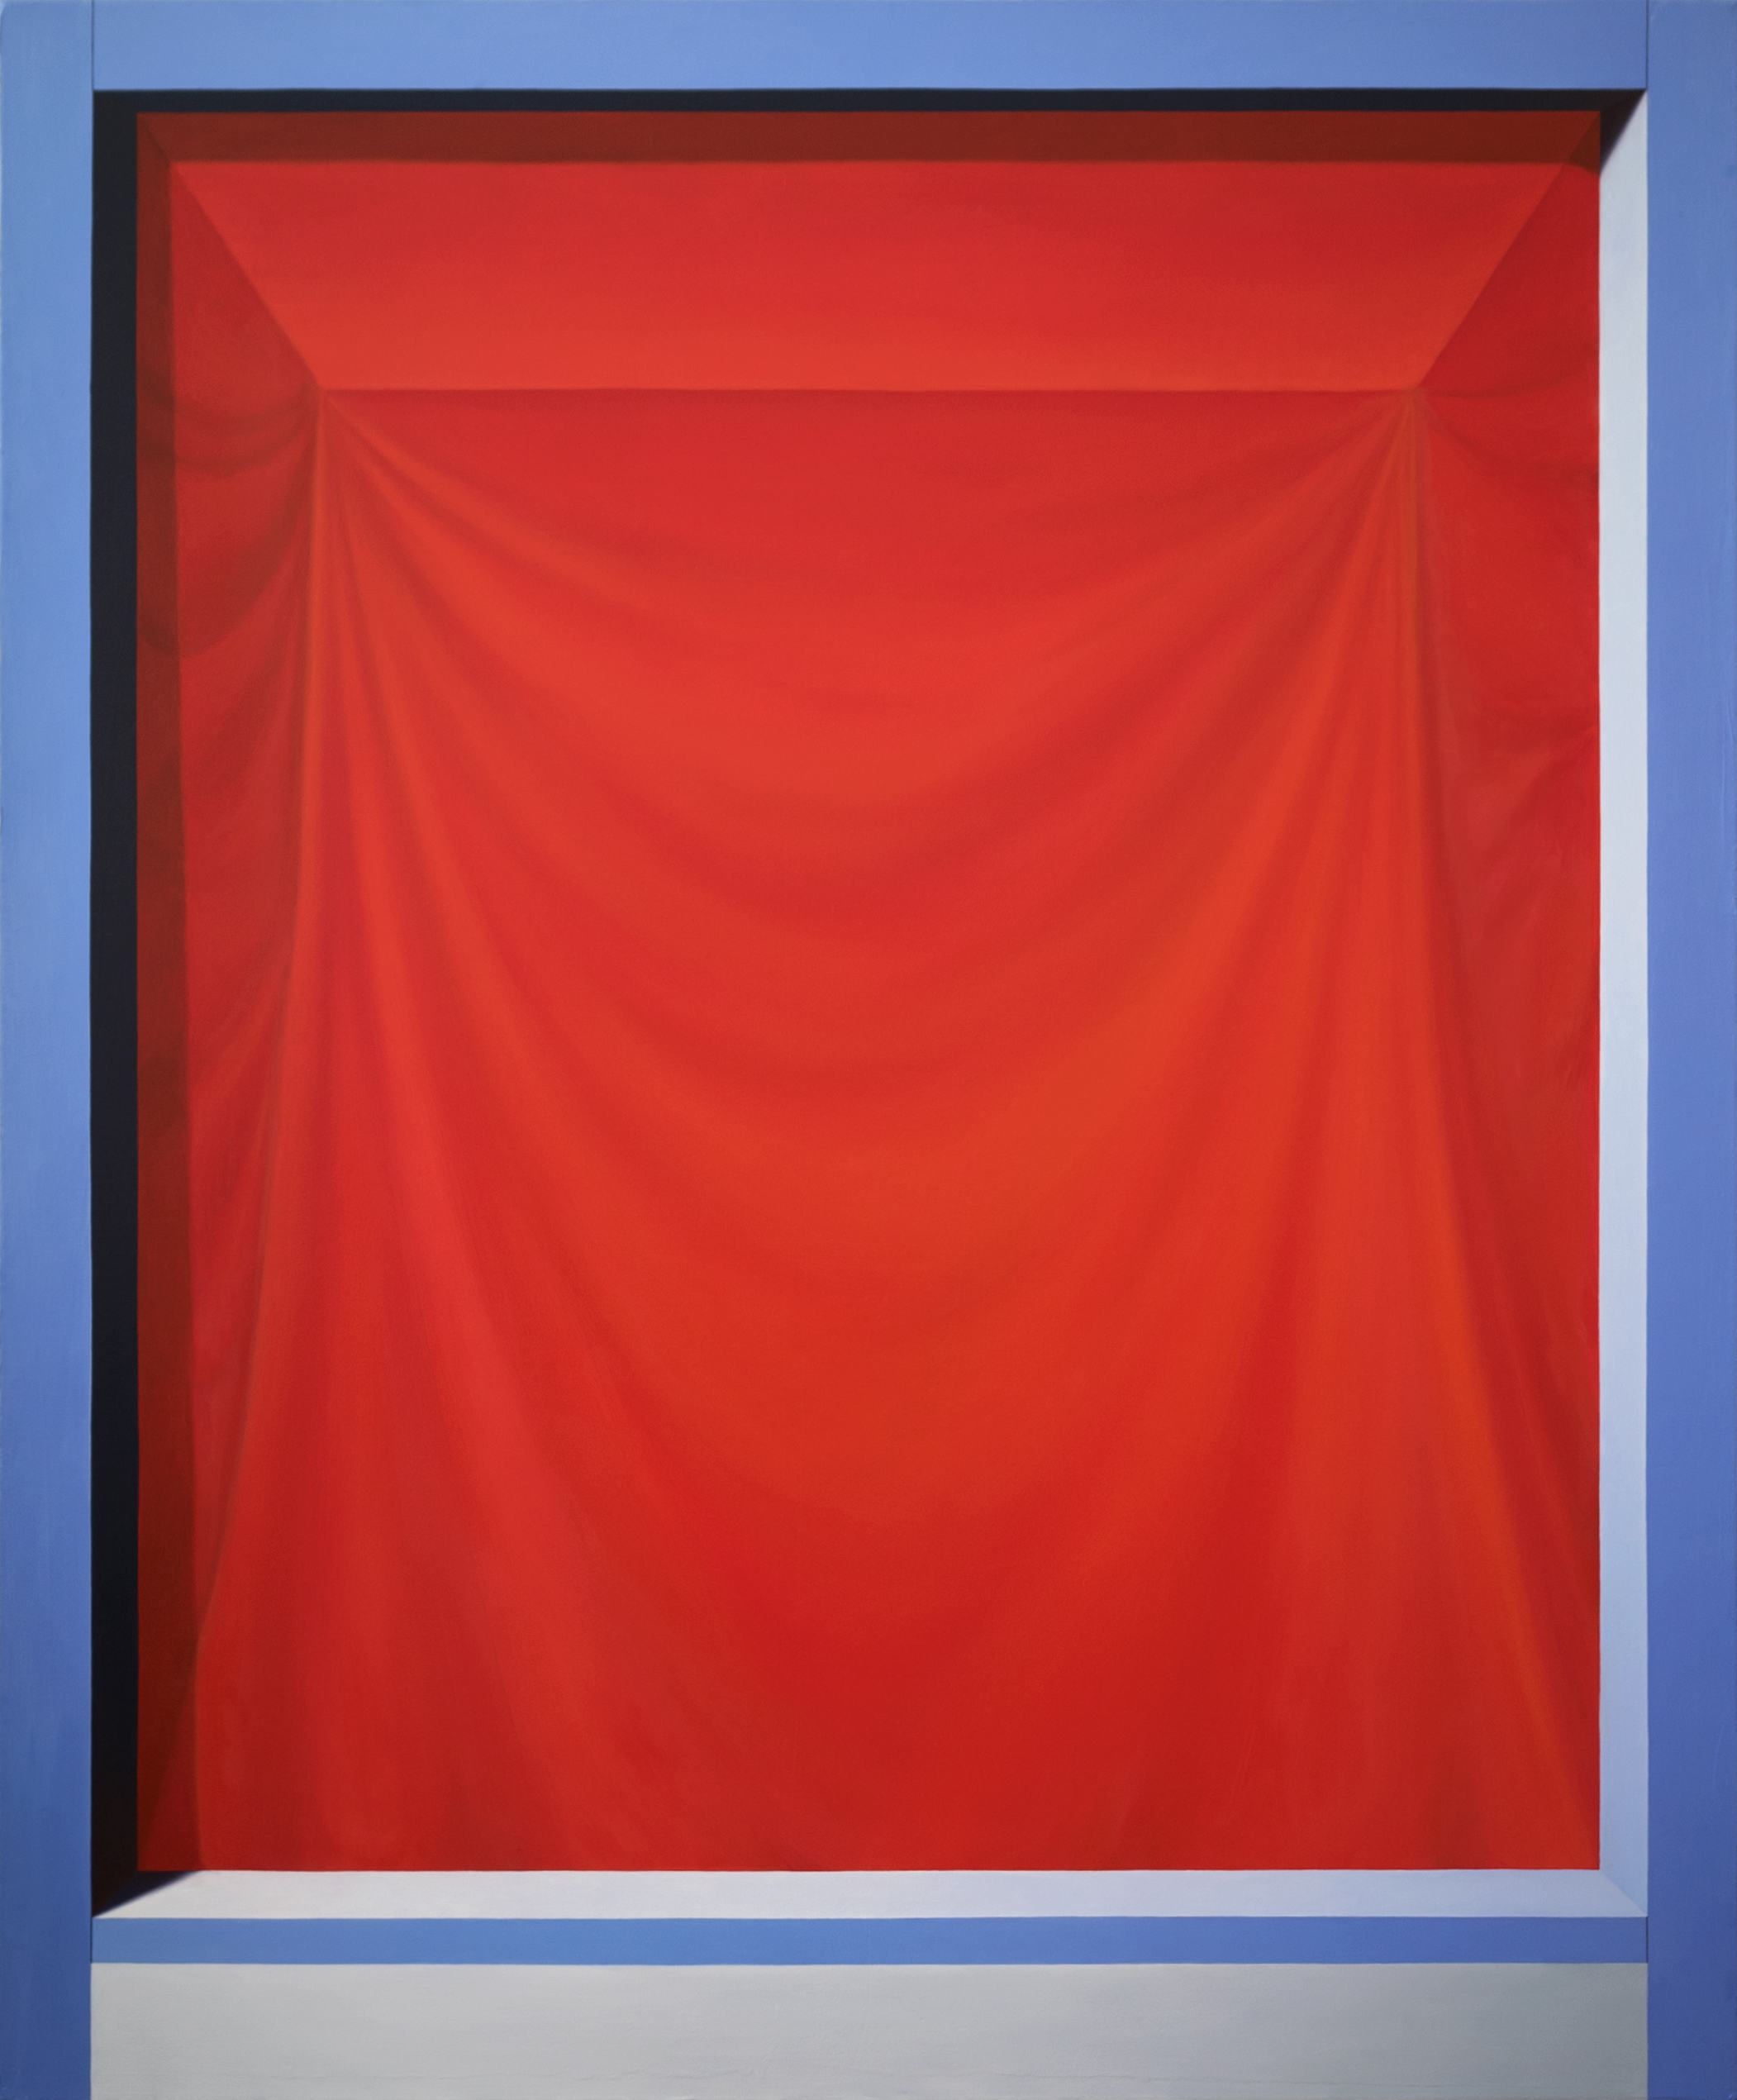 Threshold (Red Veil)   2017  Oil on canvas  46 x 38 in